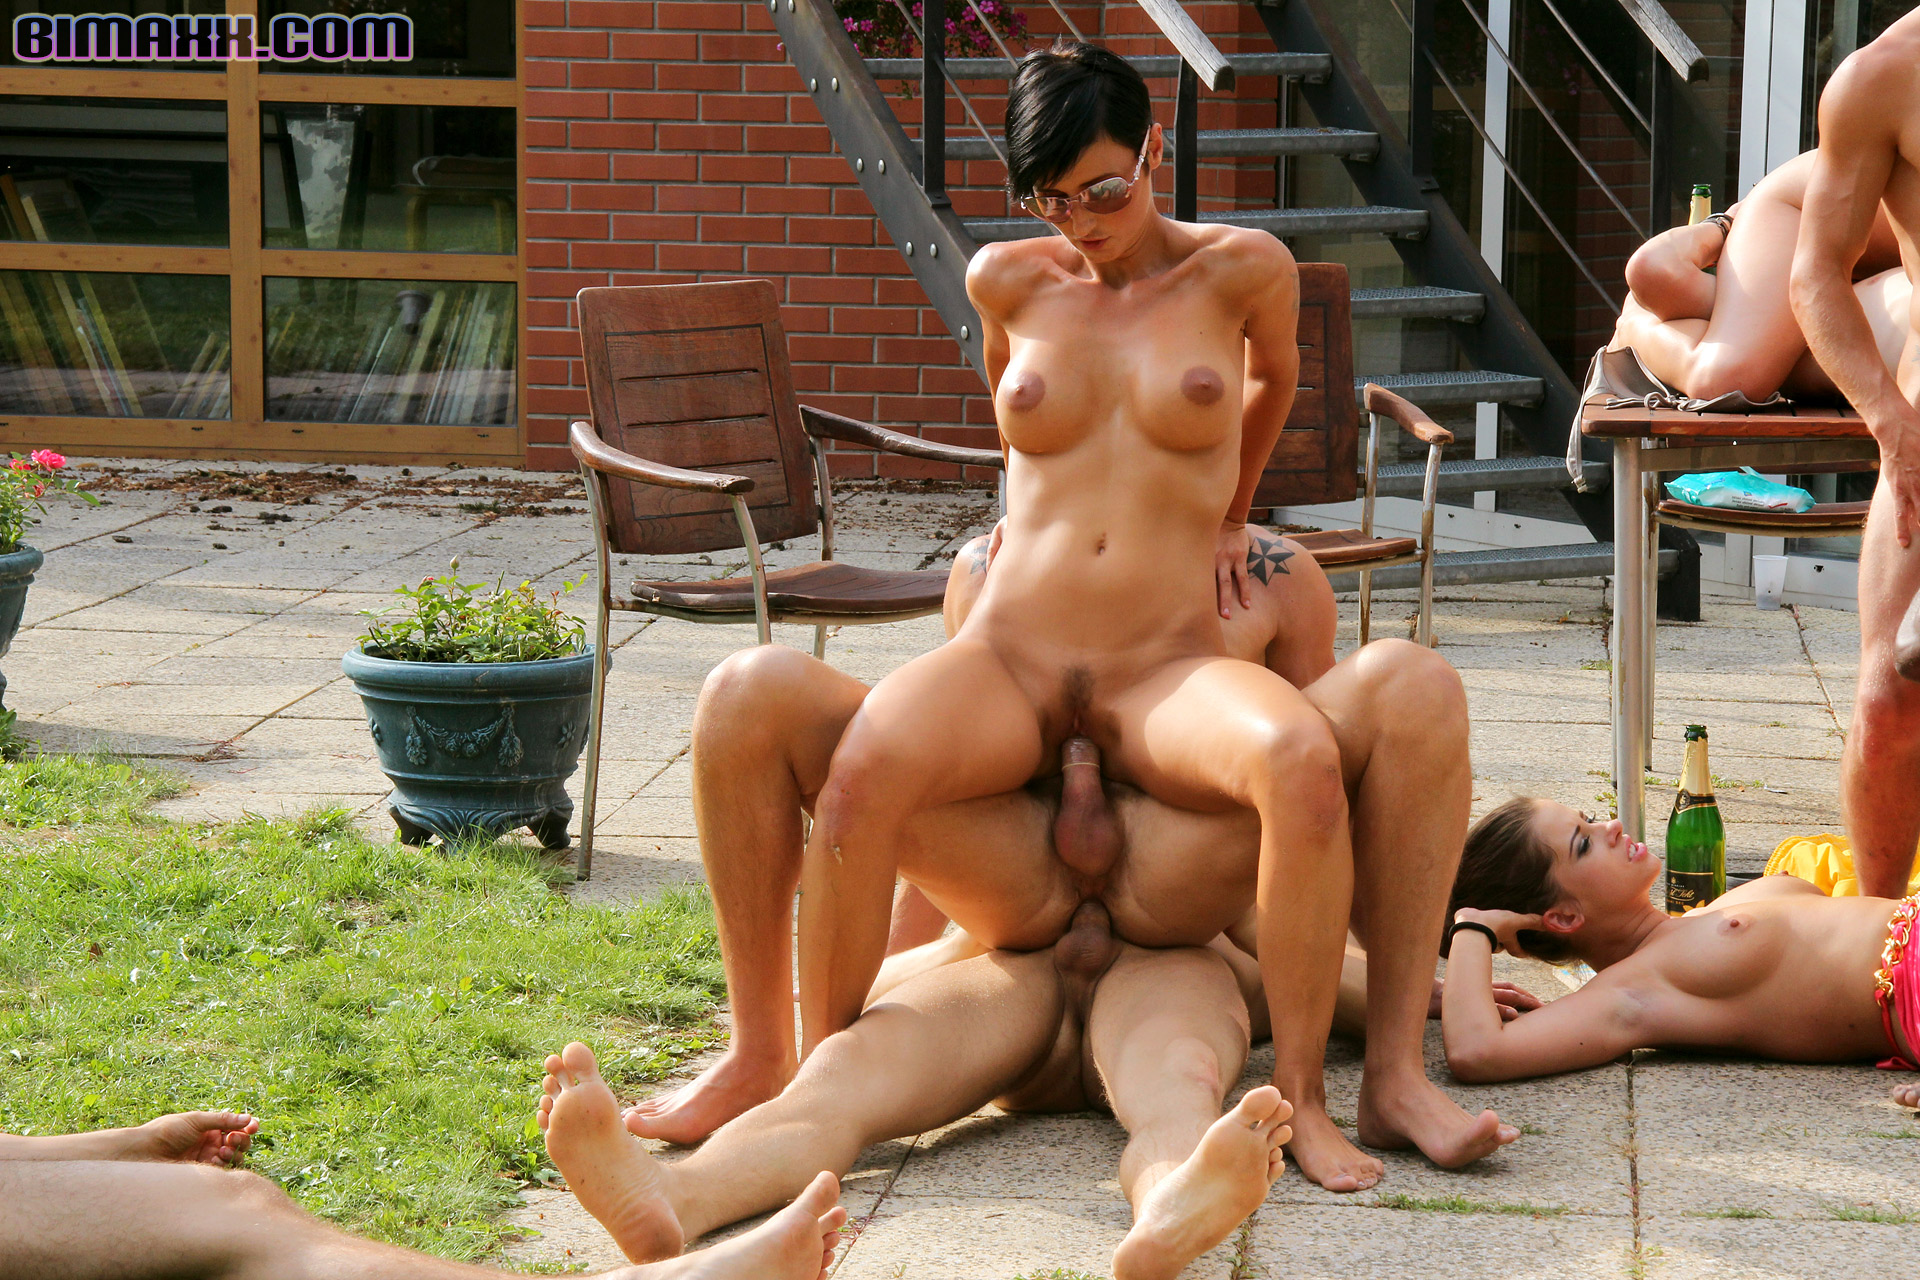 gang bang alicia roades